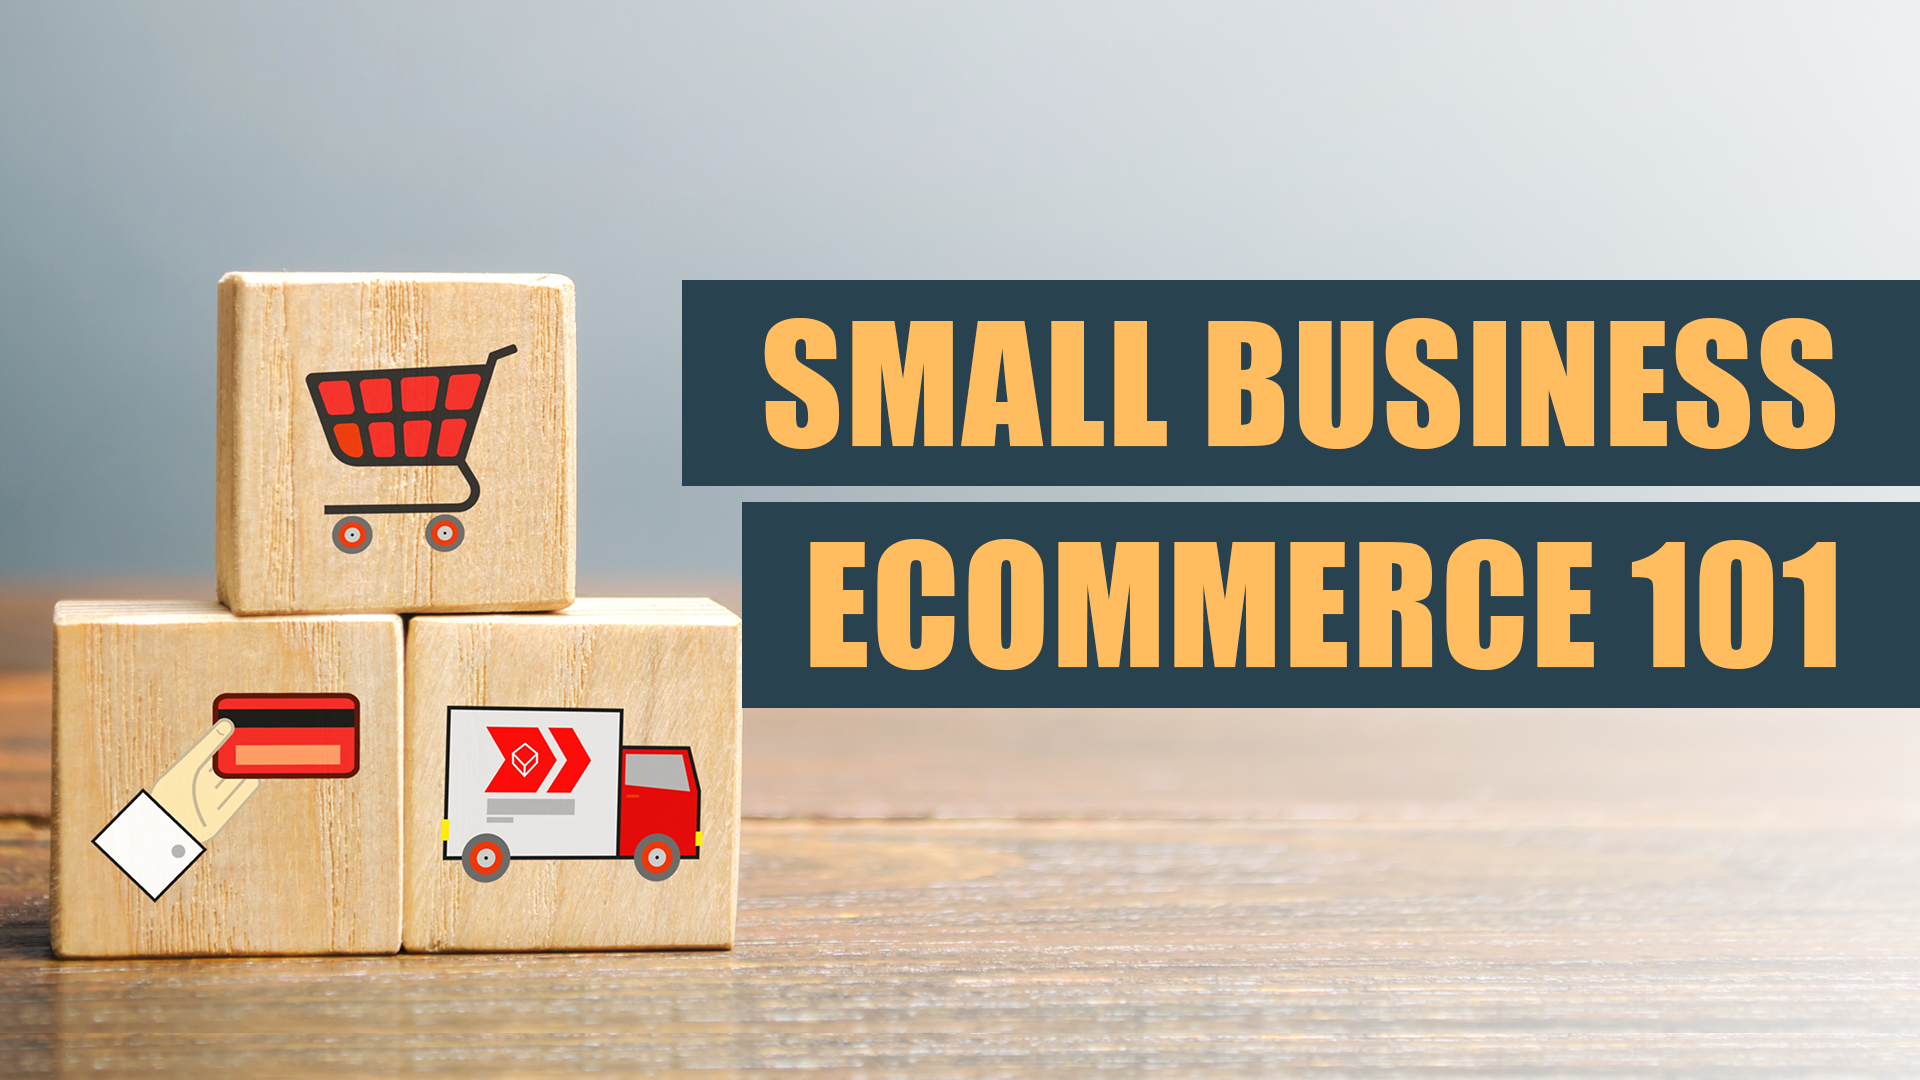 Small Business Ecommerce 101